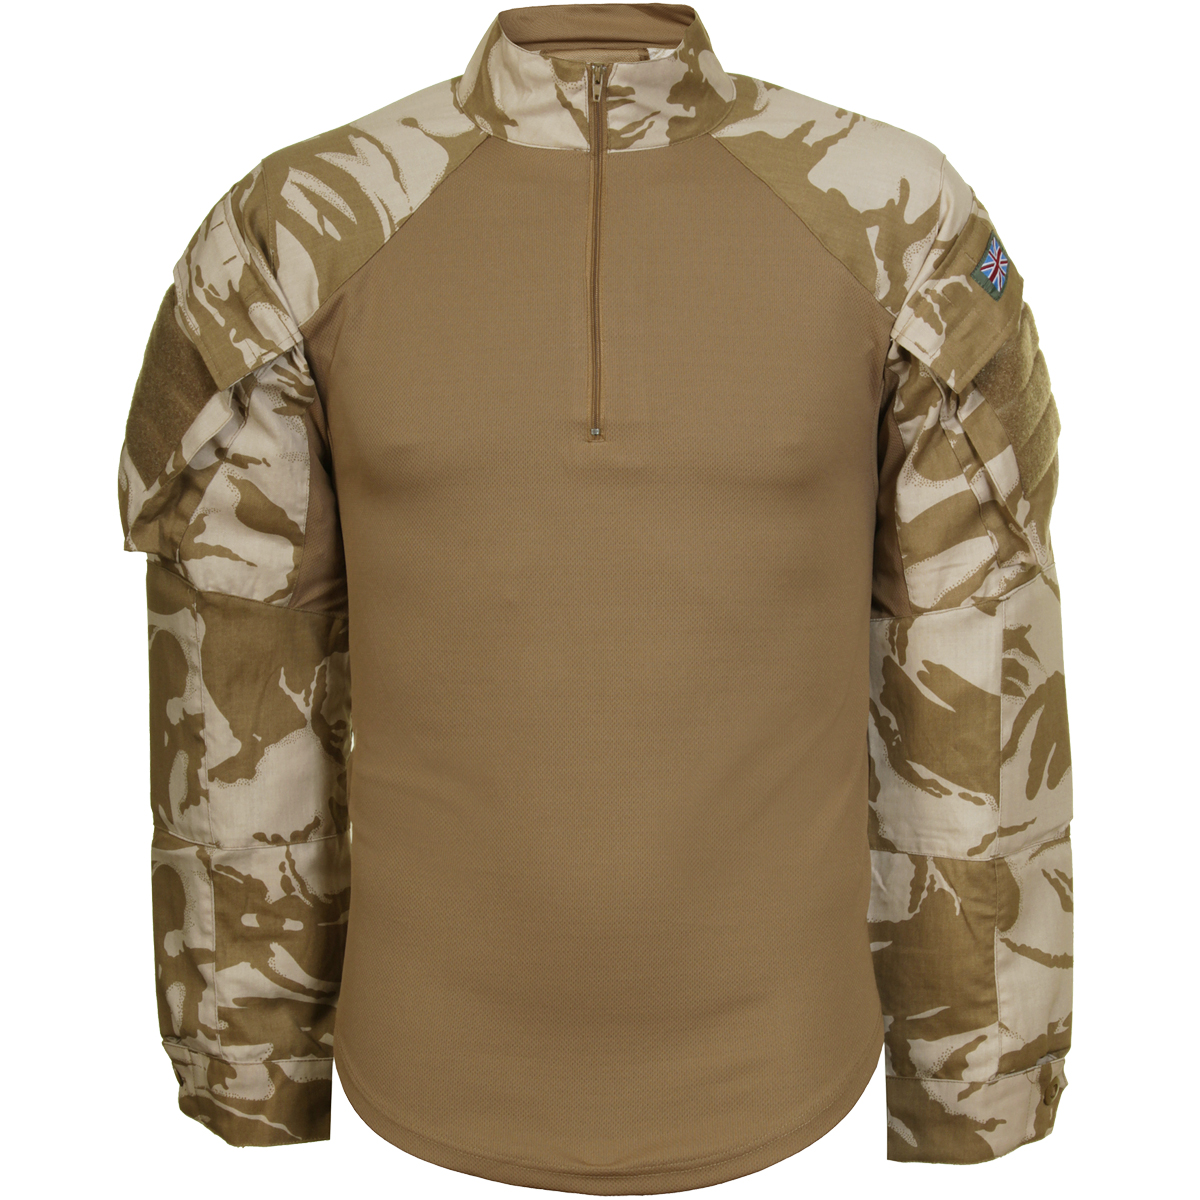 c7808ab6 Sentinel Army Tactical Combat Under Body Armour Mens Shirt British DPM  Desert Camouflage